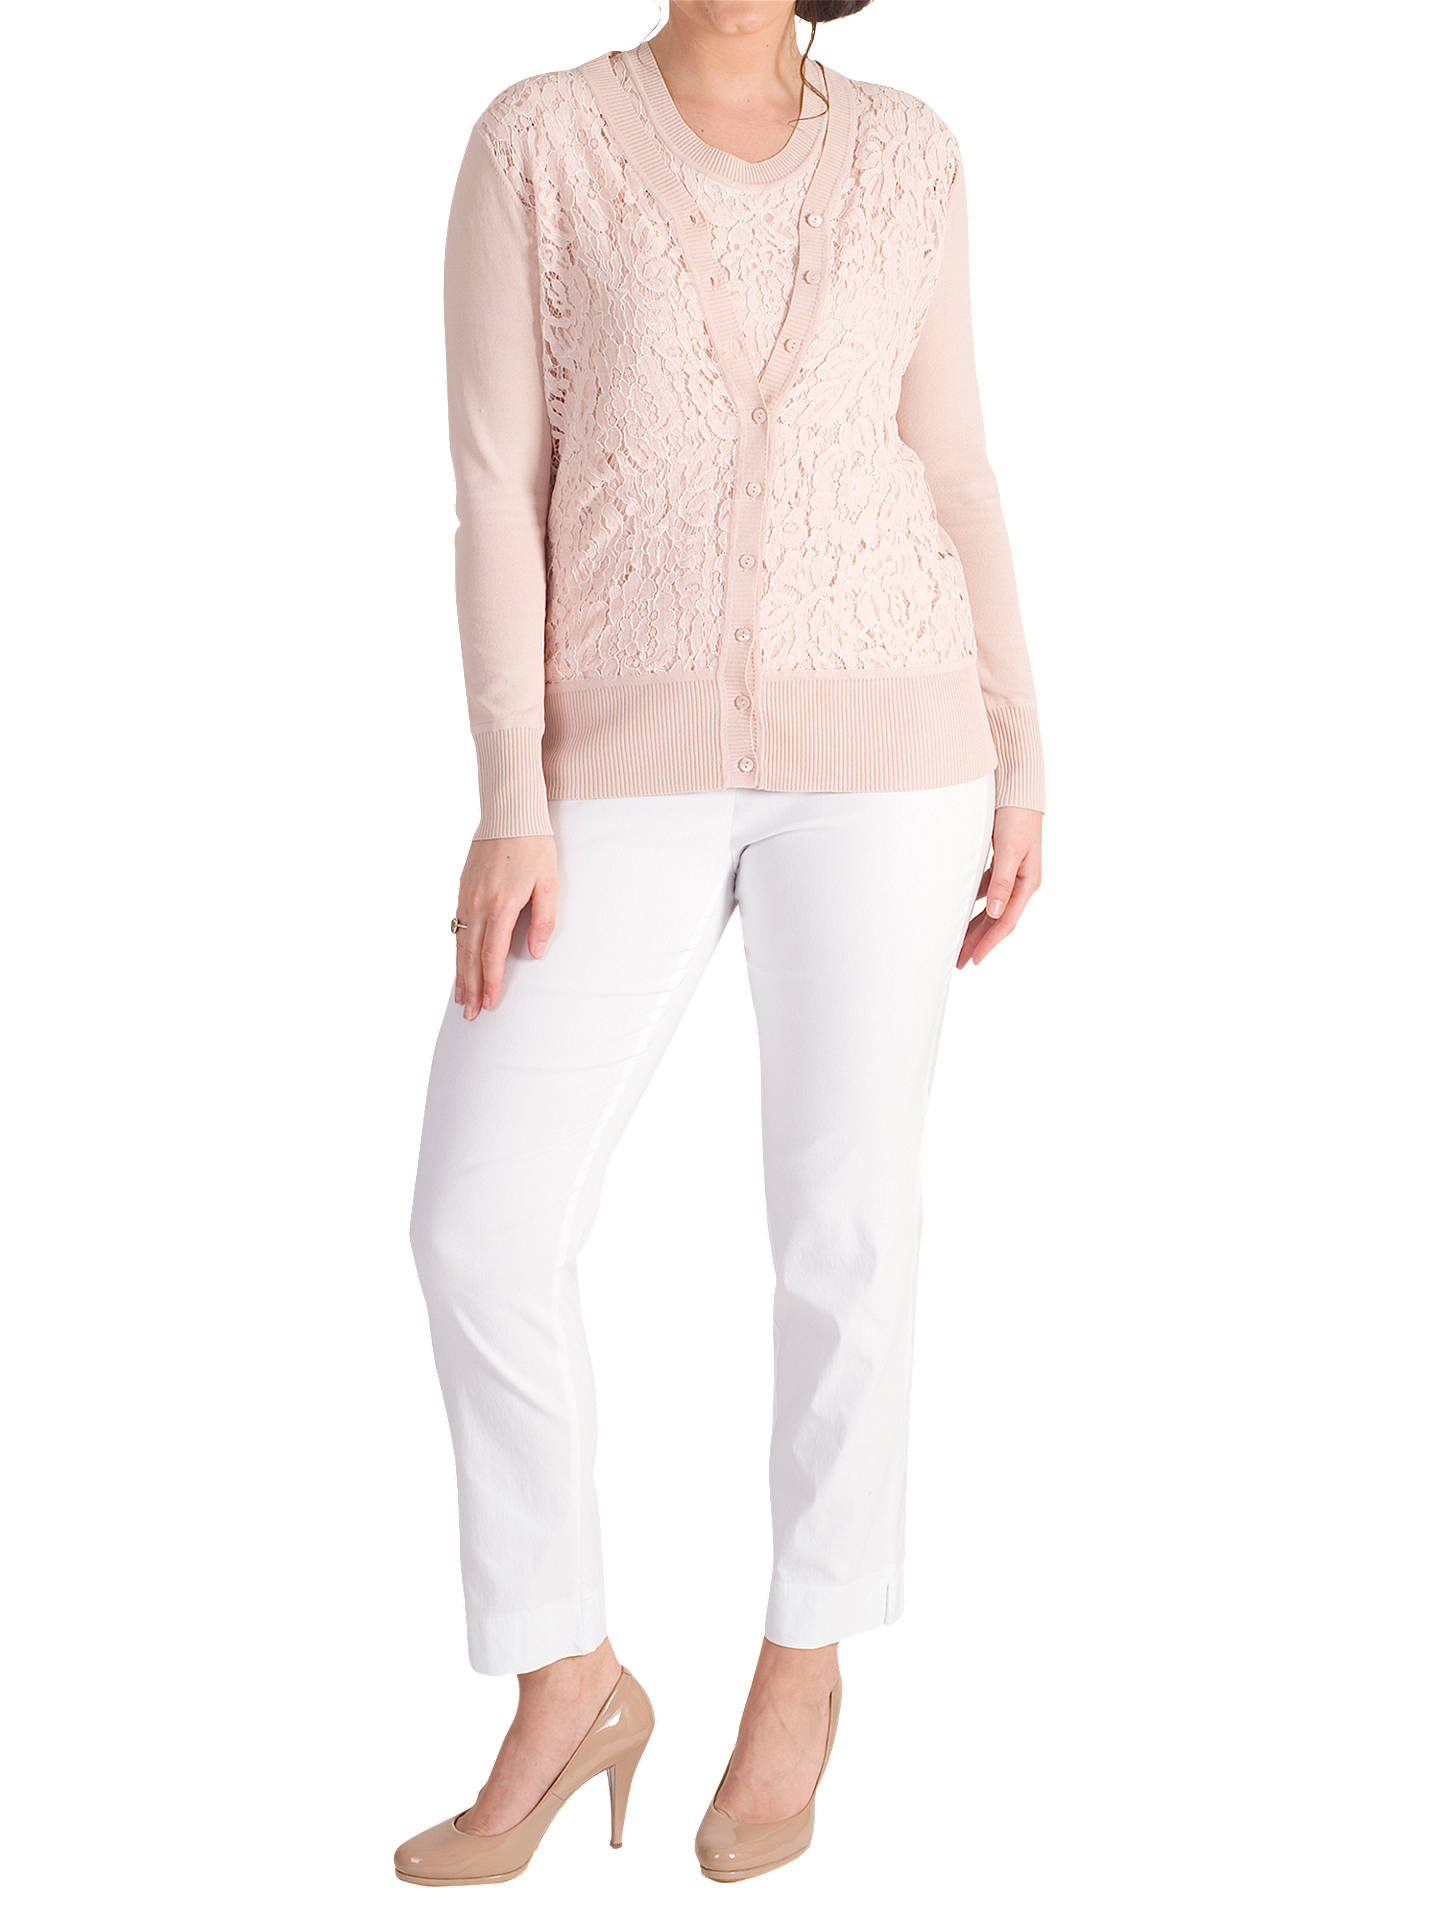 BuyChesca Corded Lace Trim Cardigan, Dark Blush, 12-14 Online at johnlewis.com